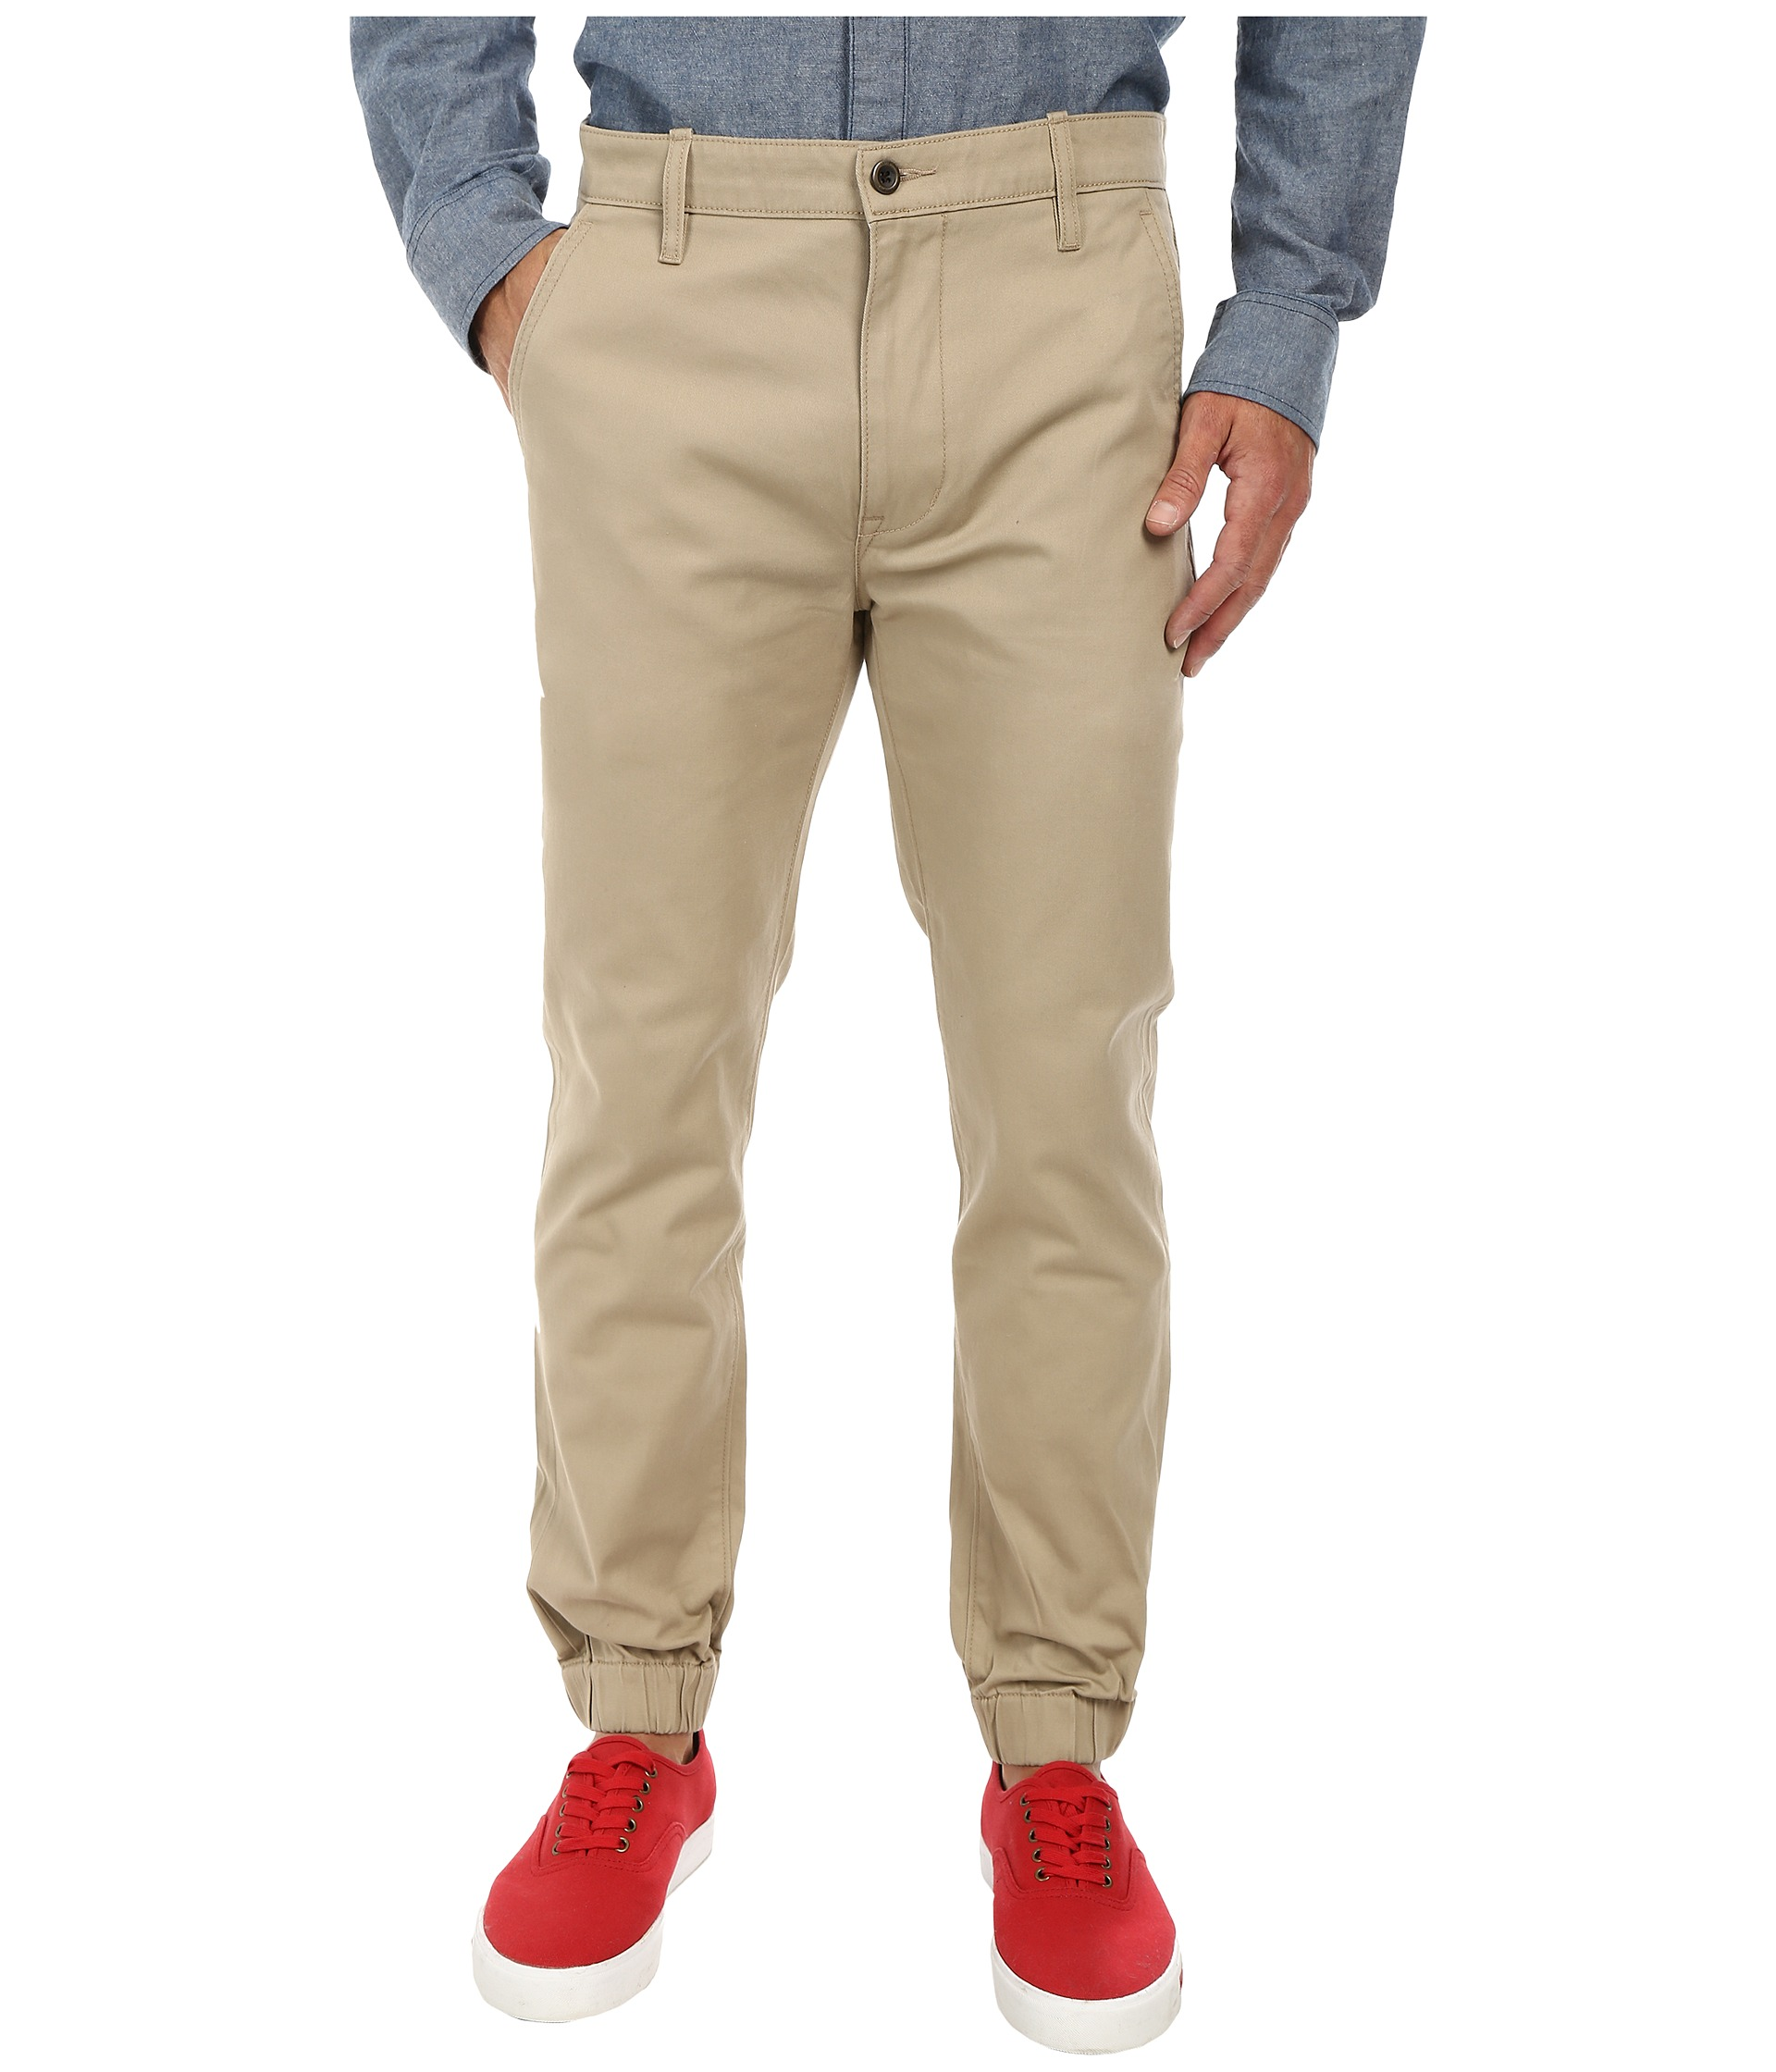 Discover the range of men's chinos and men's trousers with ASOS. Shop from hundreds of different styles from skinny chinos to joggers. Shop now at ASOS.